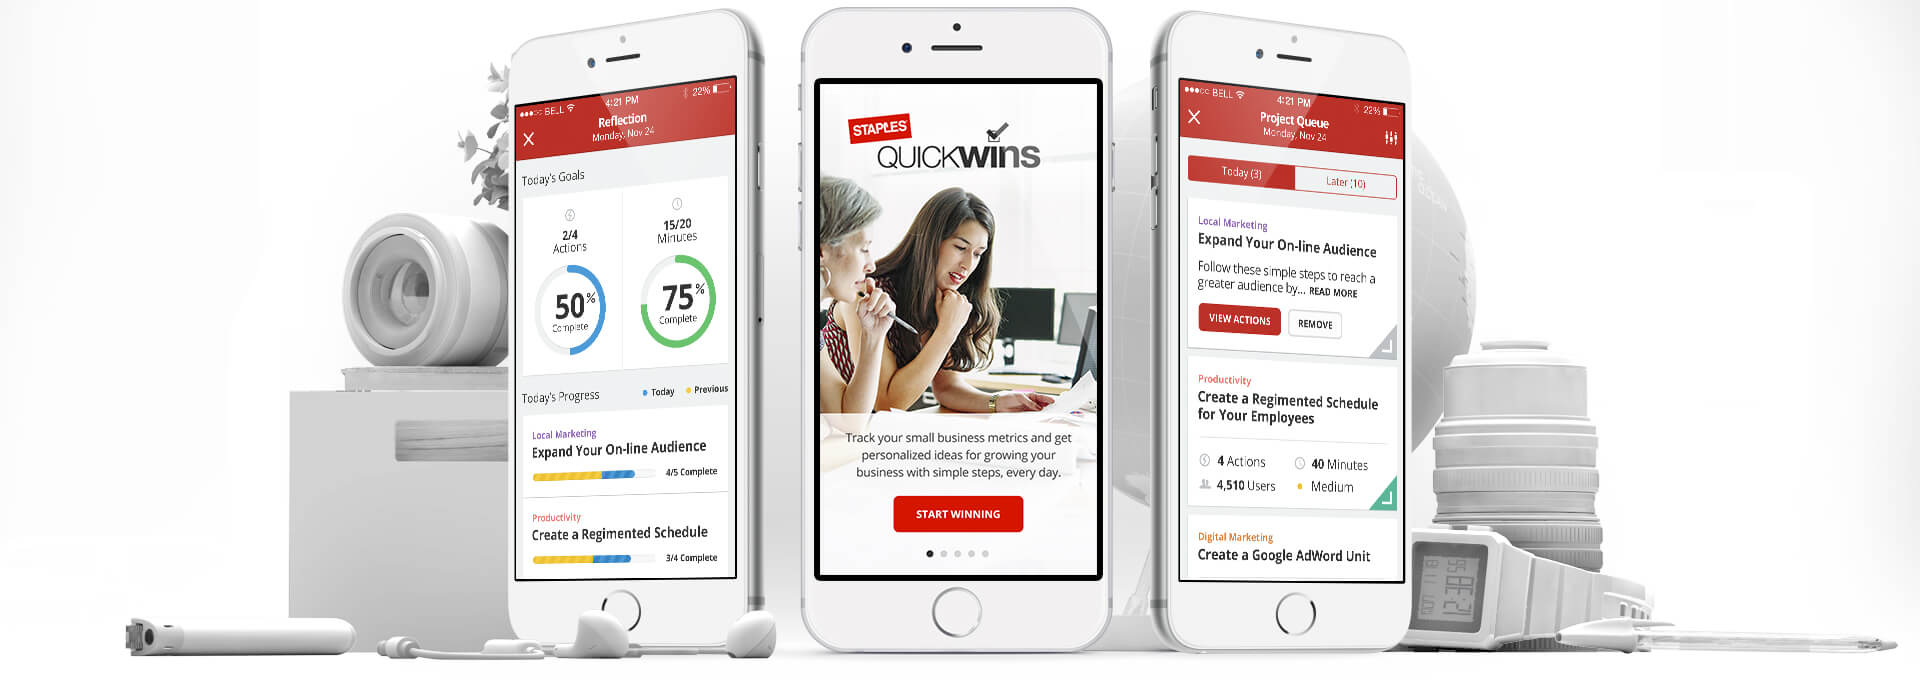 Staples Quick Wins App Home